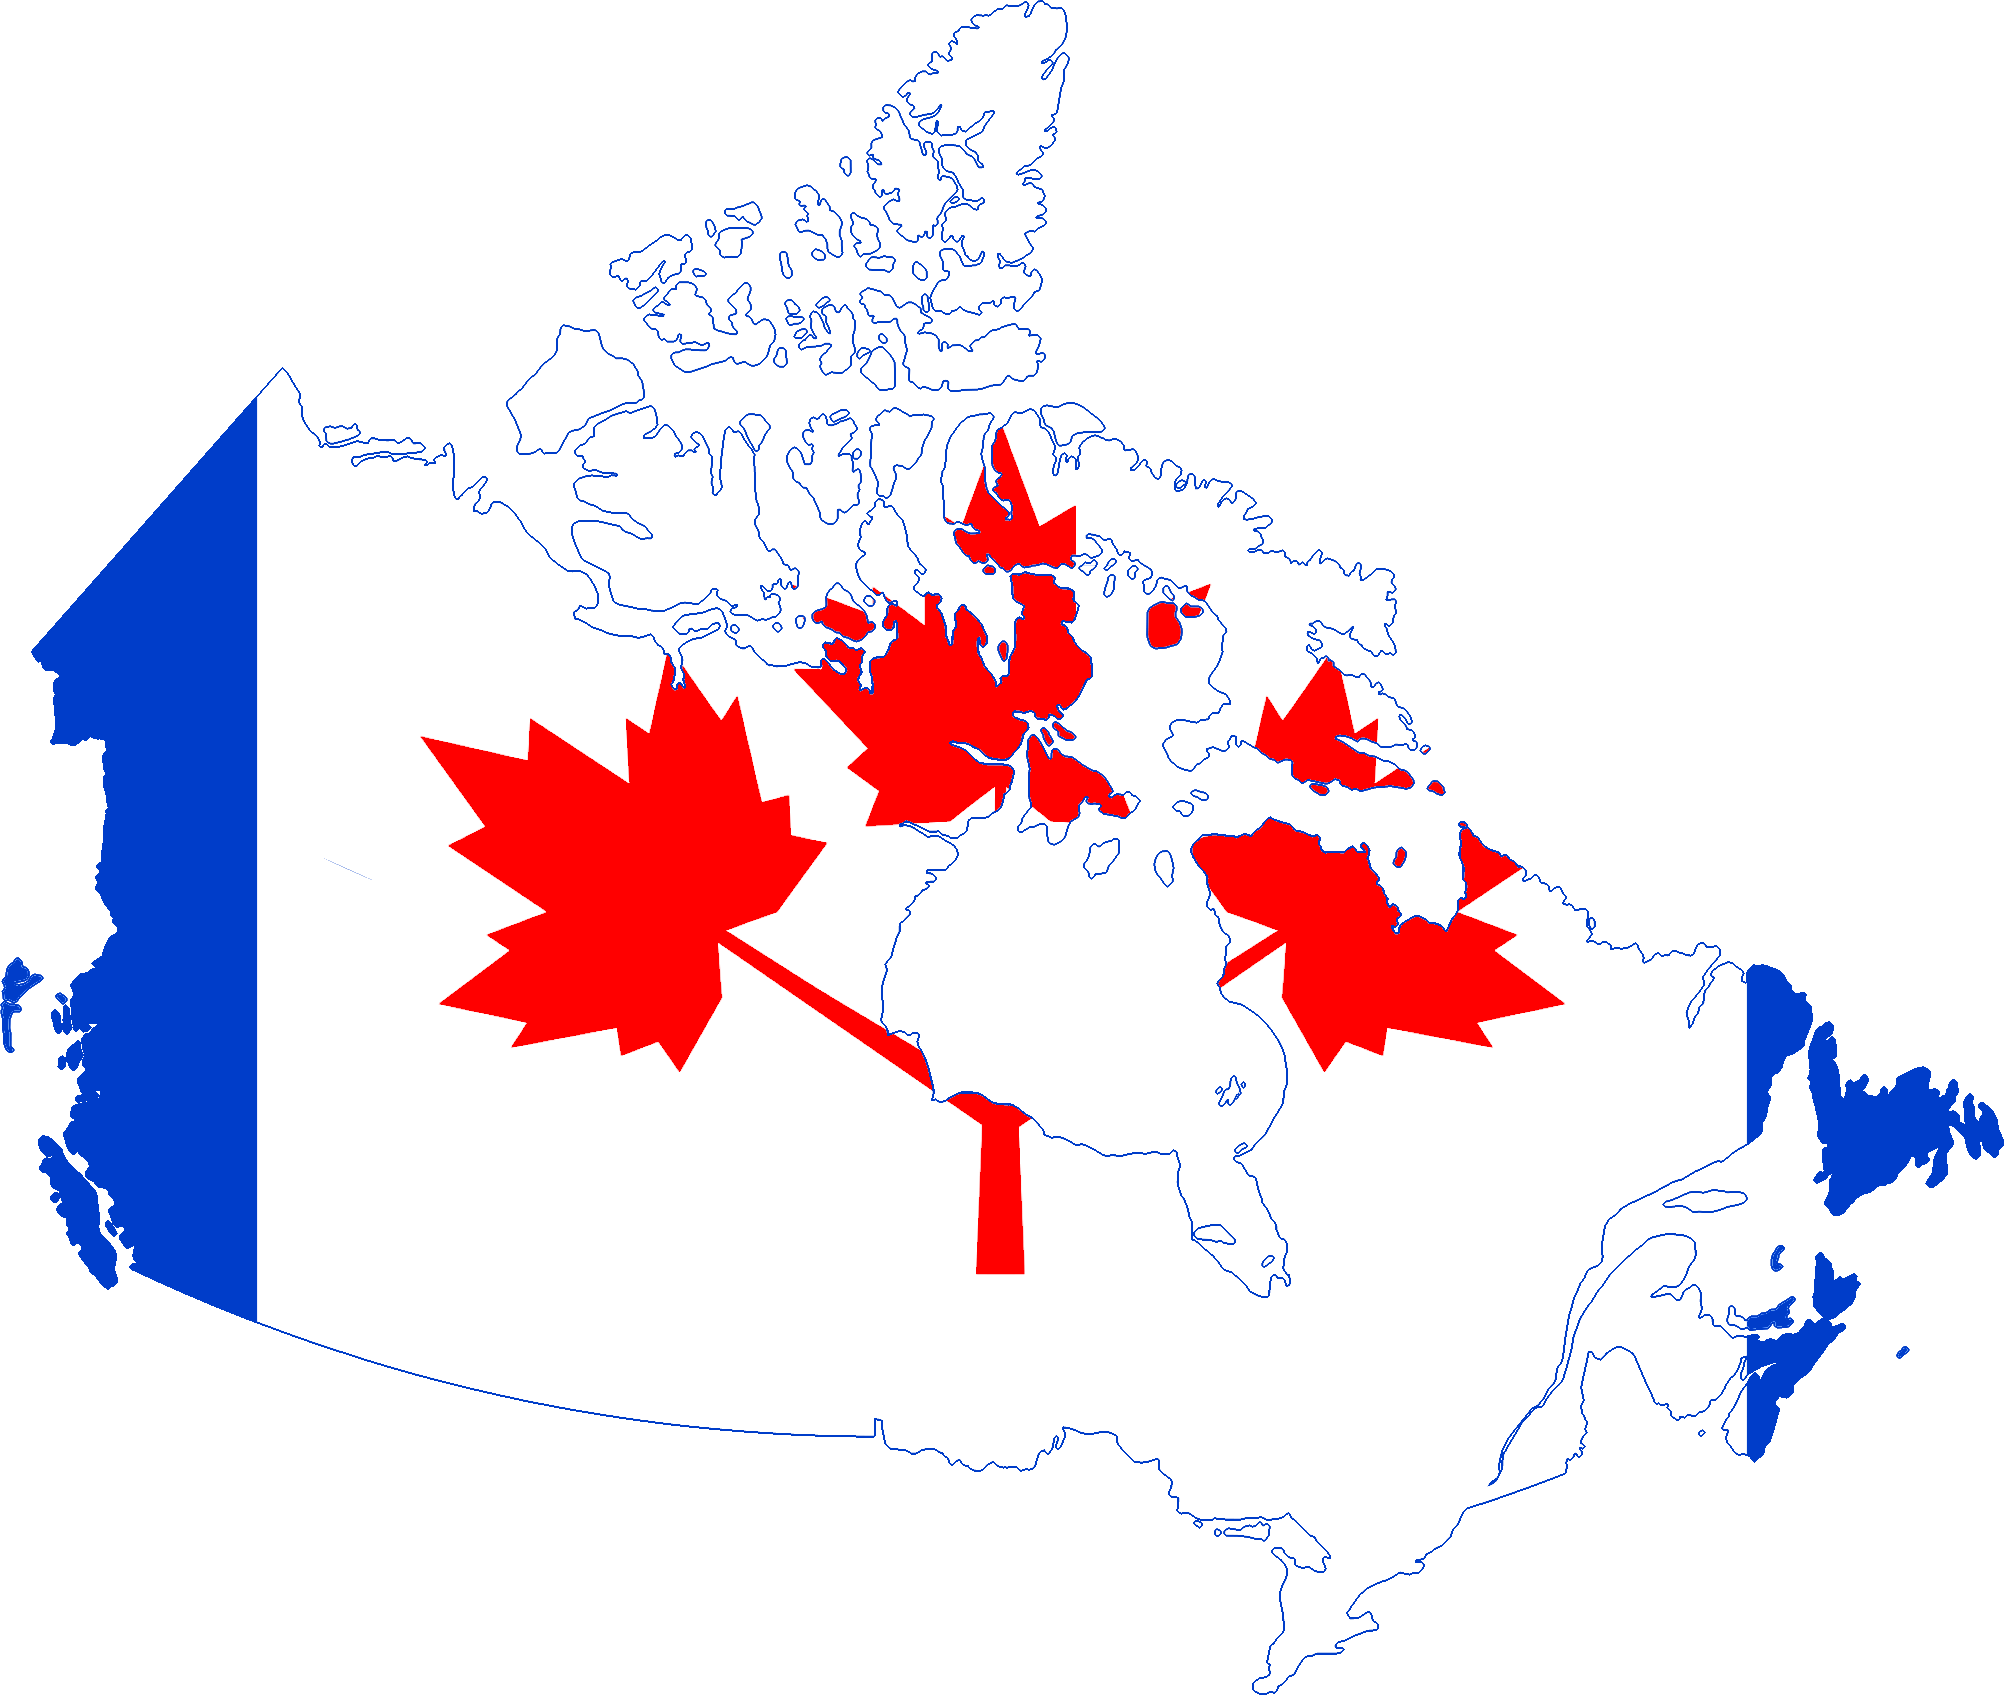 Canada Flag Map Wikimedia Commons - Canada map with flag